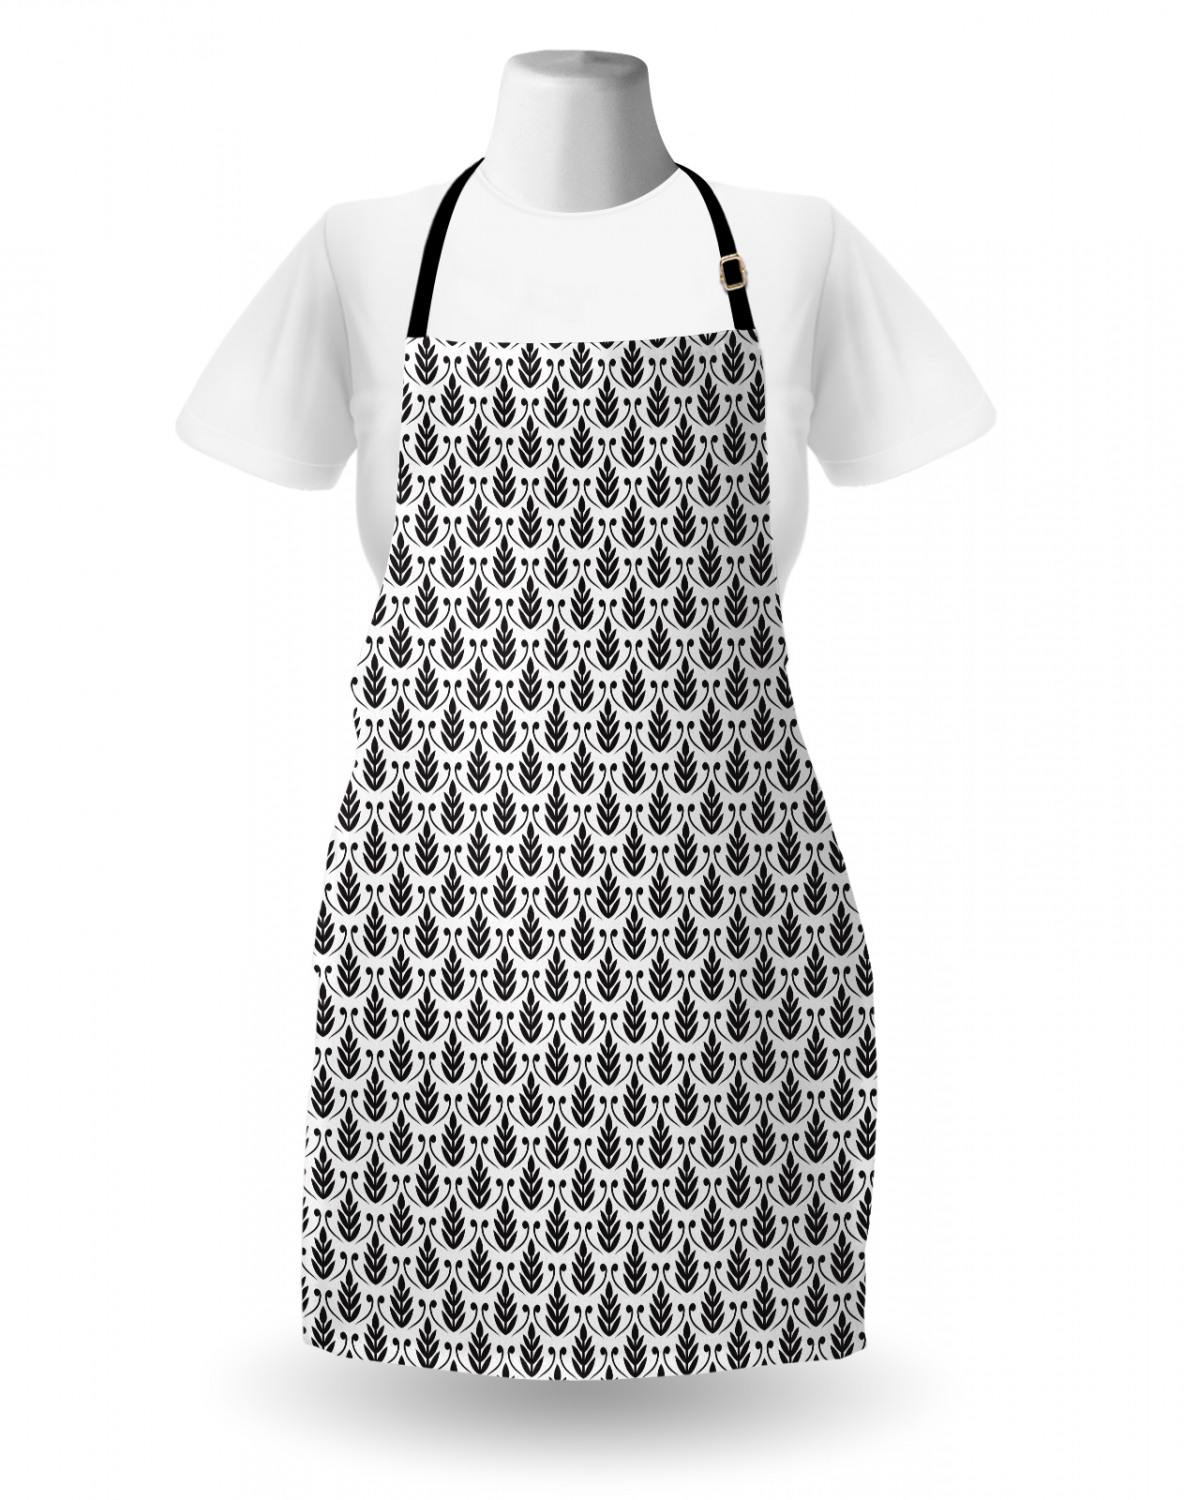 Ambesonne-Outdoor-Use-Apron-with-Adjustable-Neck-Strap-for-Gardening-and-Cooking miniatura 110